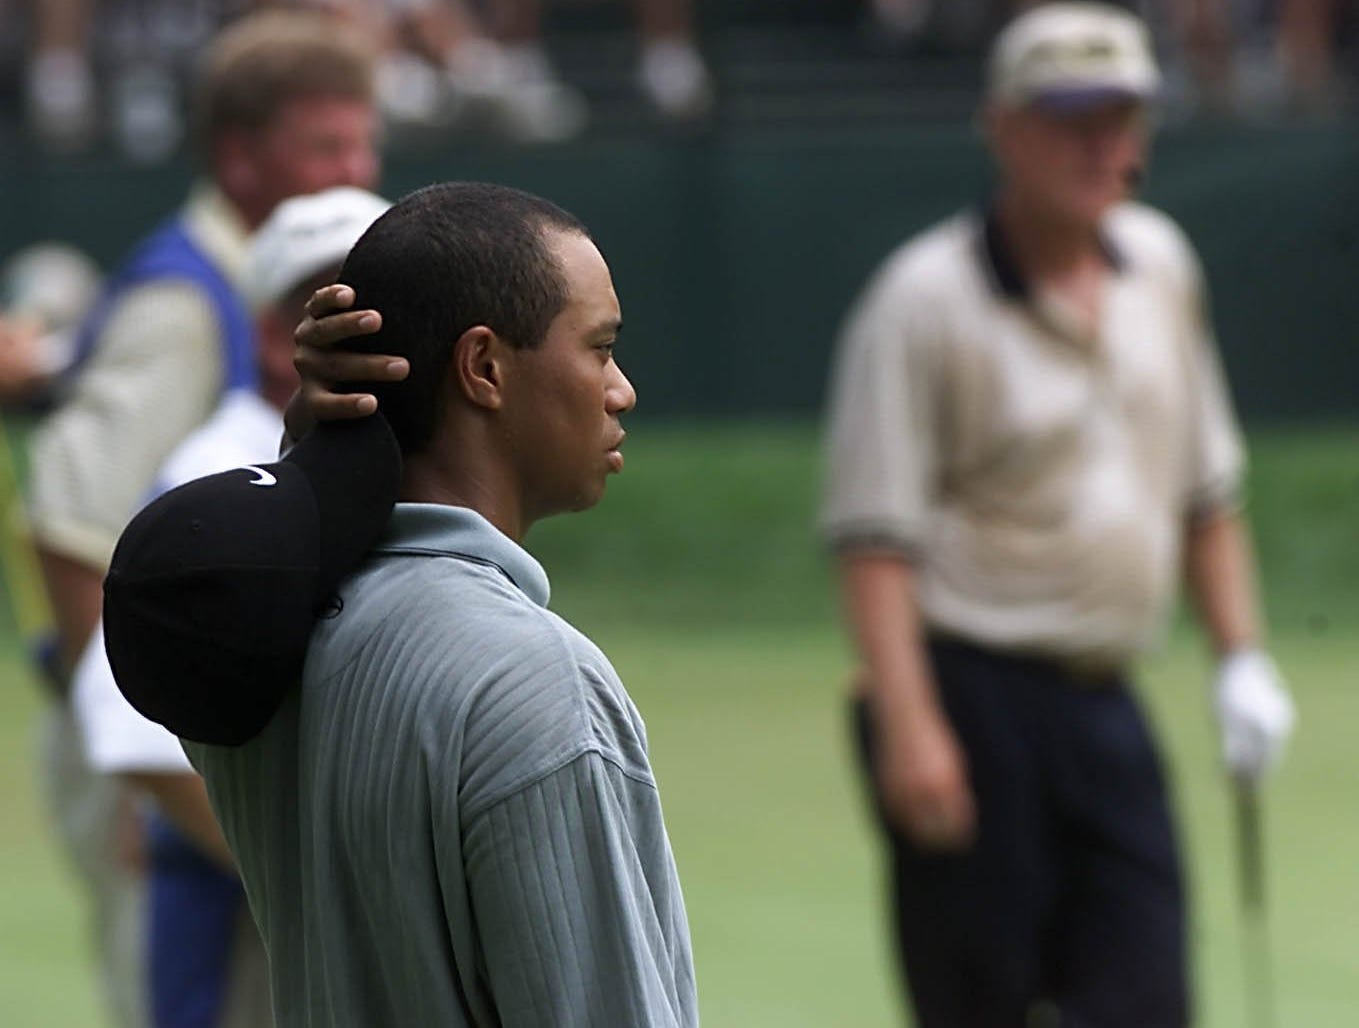 Tiger Woods who shared the early first round lead for the PGA Championship at Valhalla and Jack Nicklaus, background, who struggled through his first round both waited for their chance to putt on the 14th green.